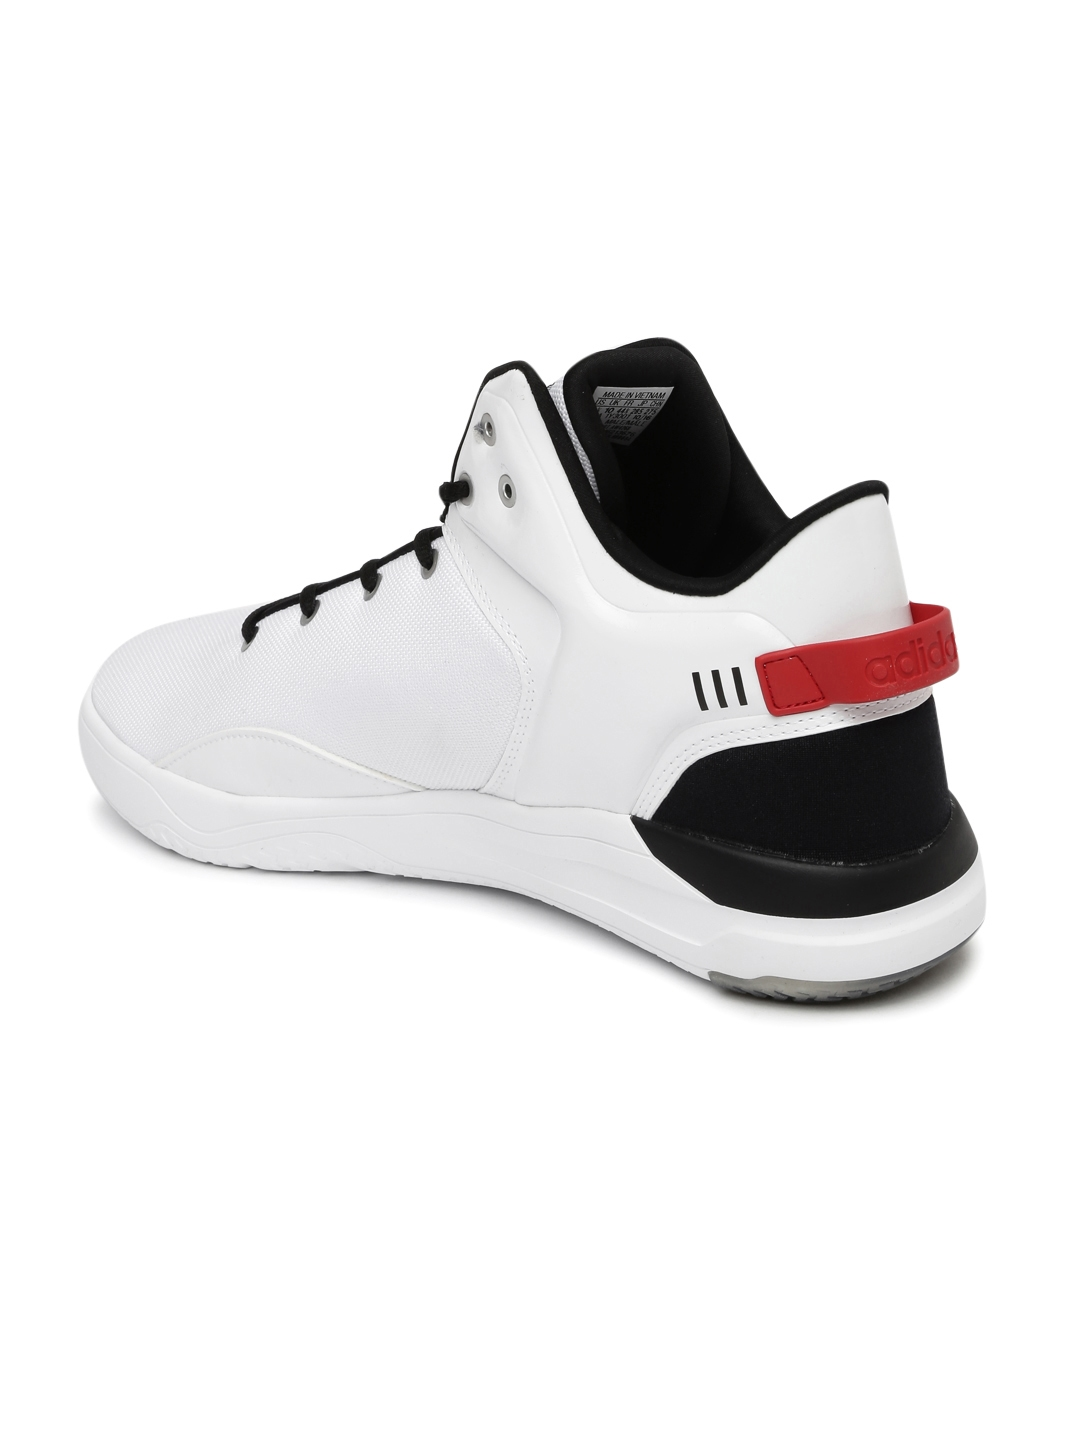 official photos df6b9 41a3e ADIDAS NEO Men White Solid Cloudfoam Revival Star War Mid-Top Sneakers